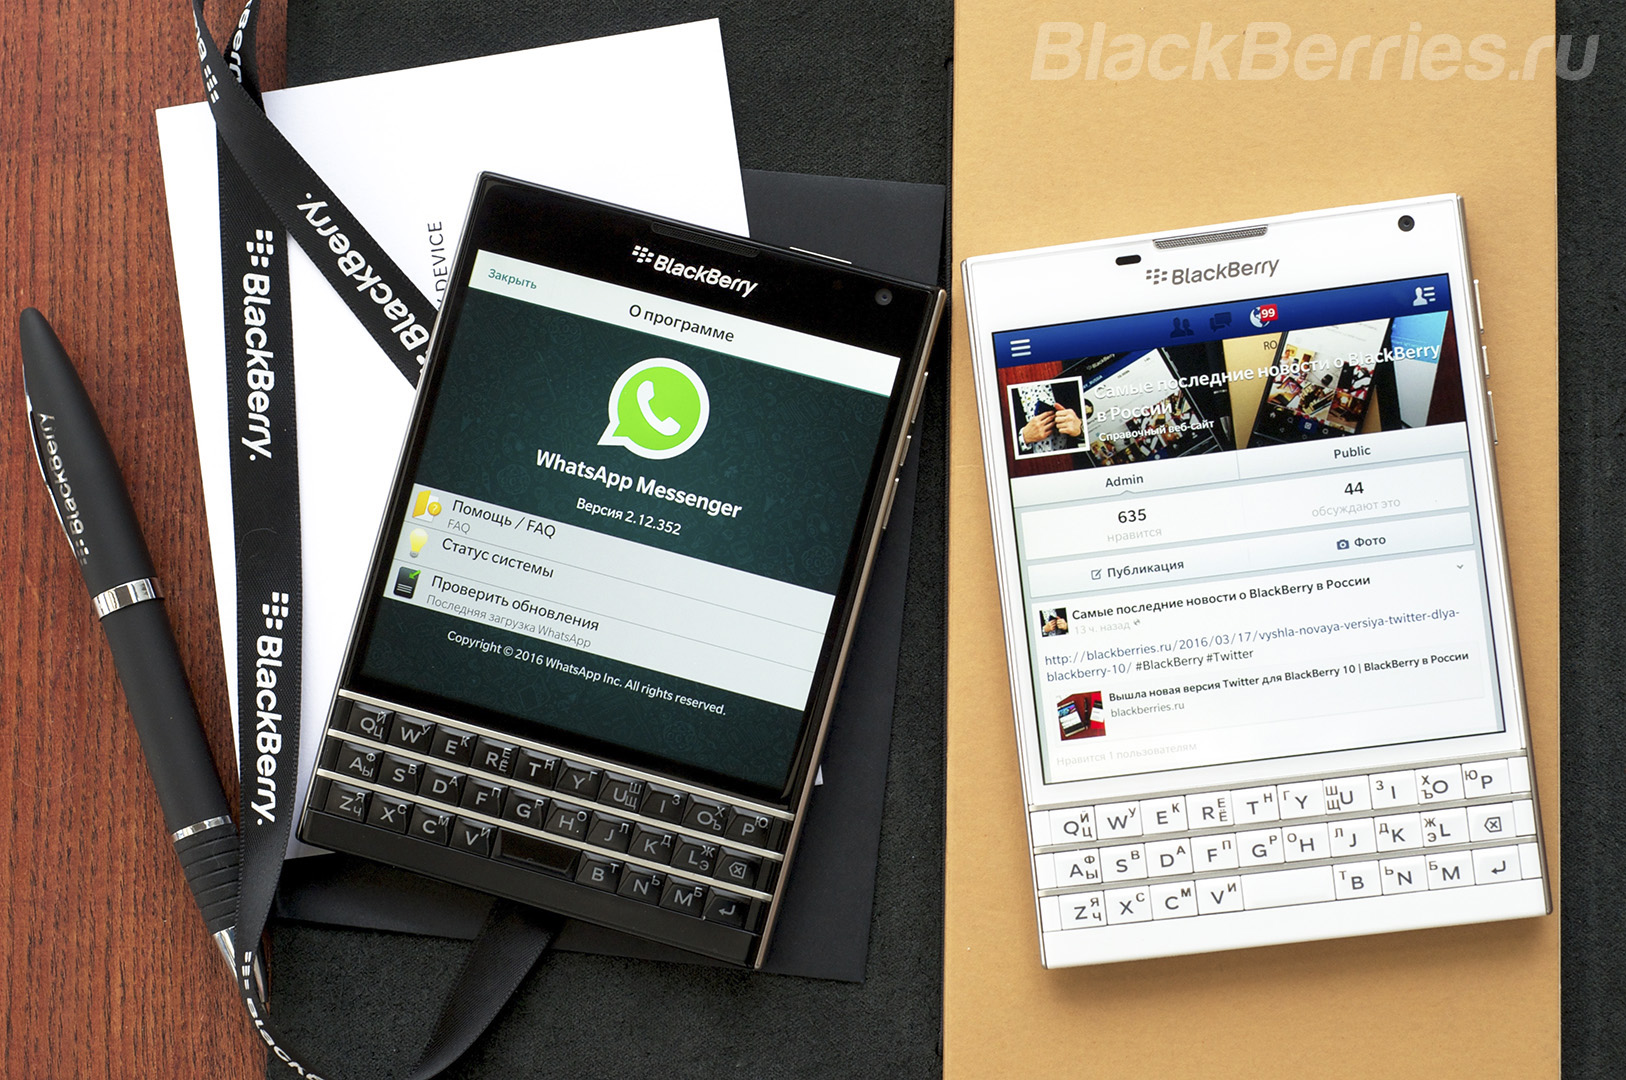 whatsapp-blackberry-10